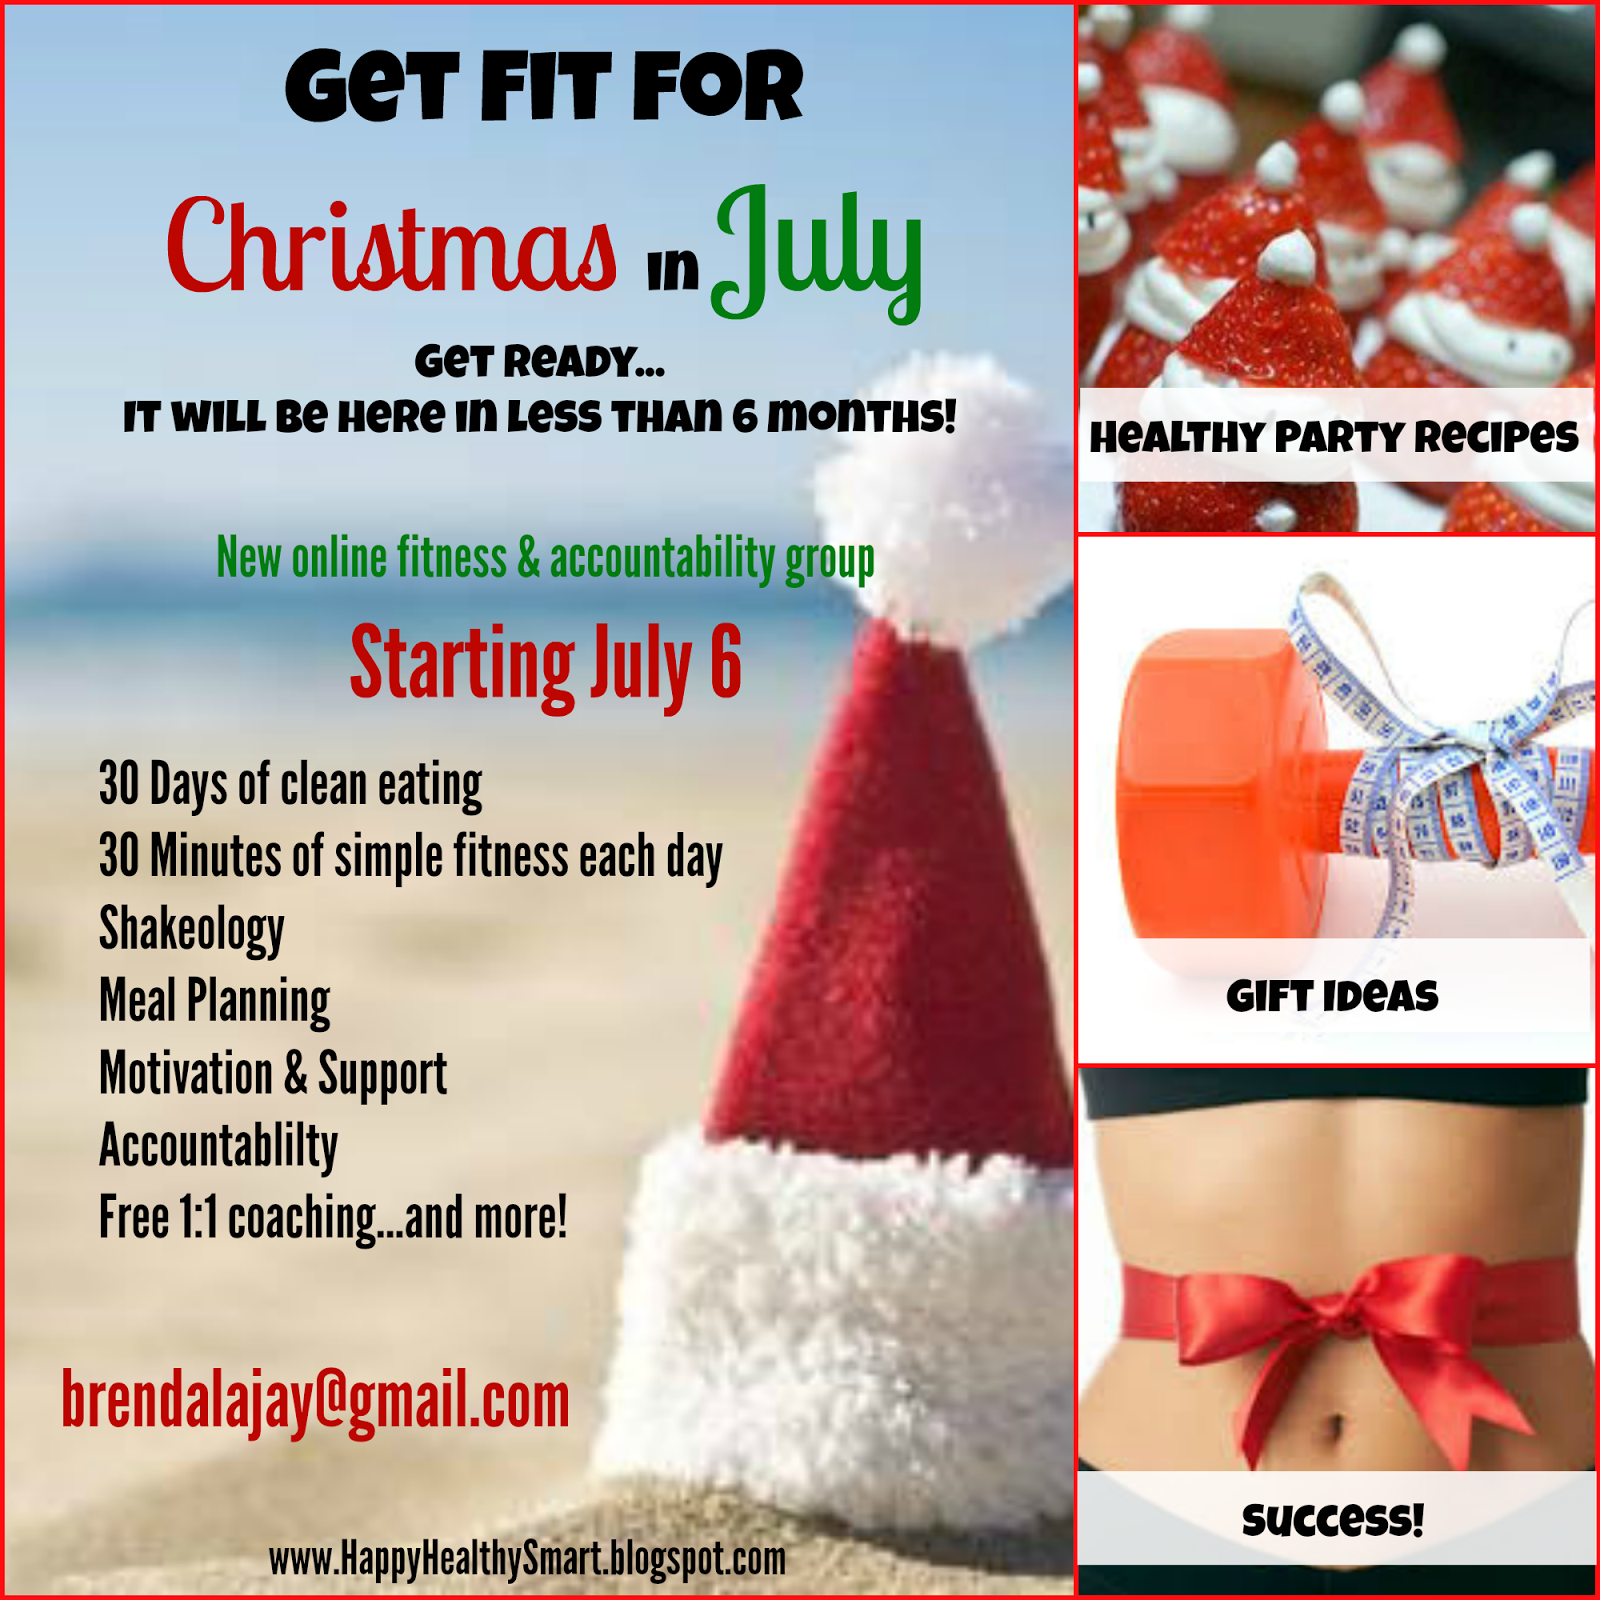 Happy Healthy Smart : Get Fit For Christmas